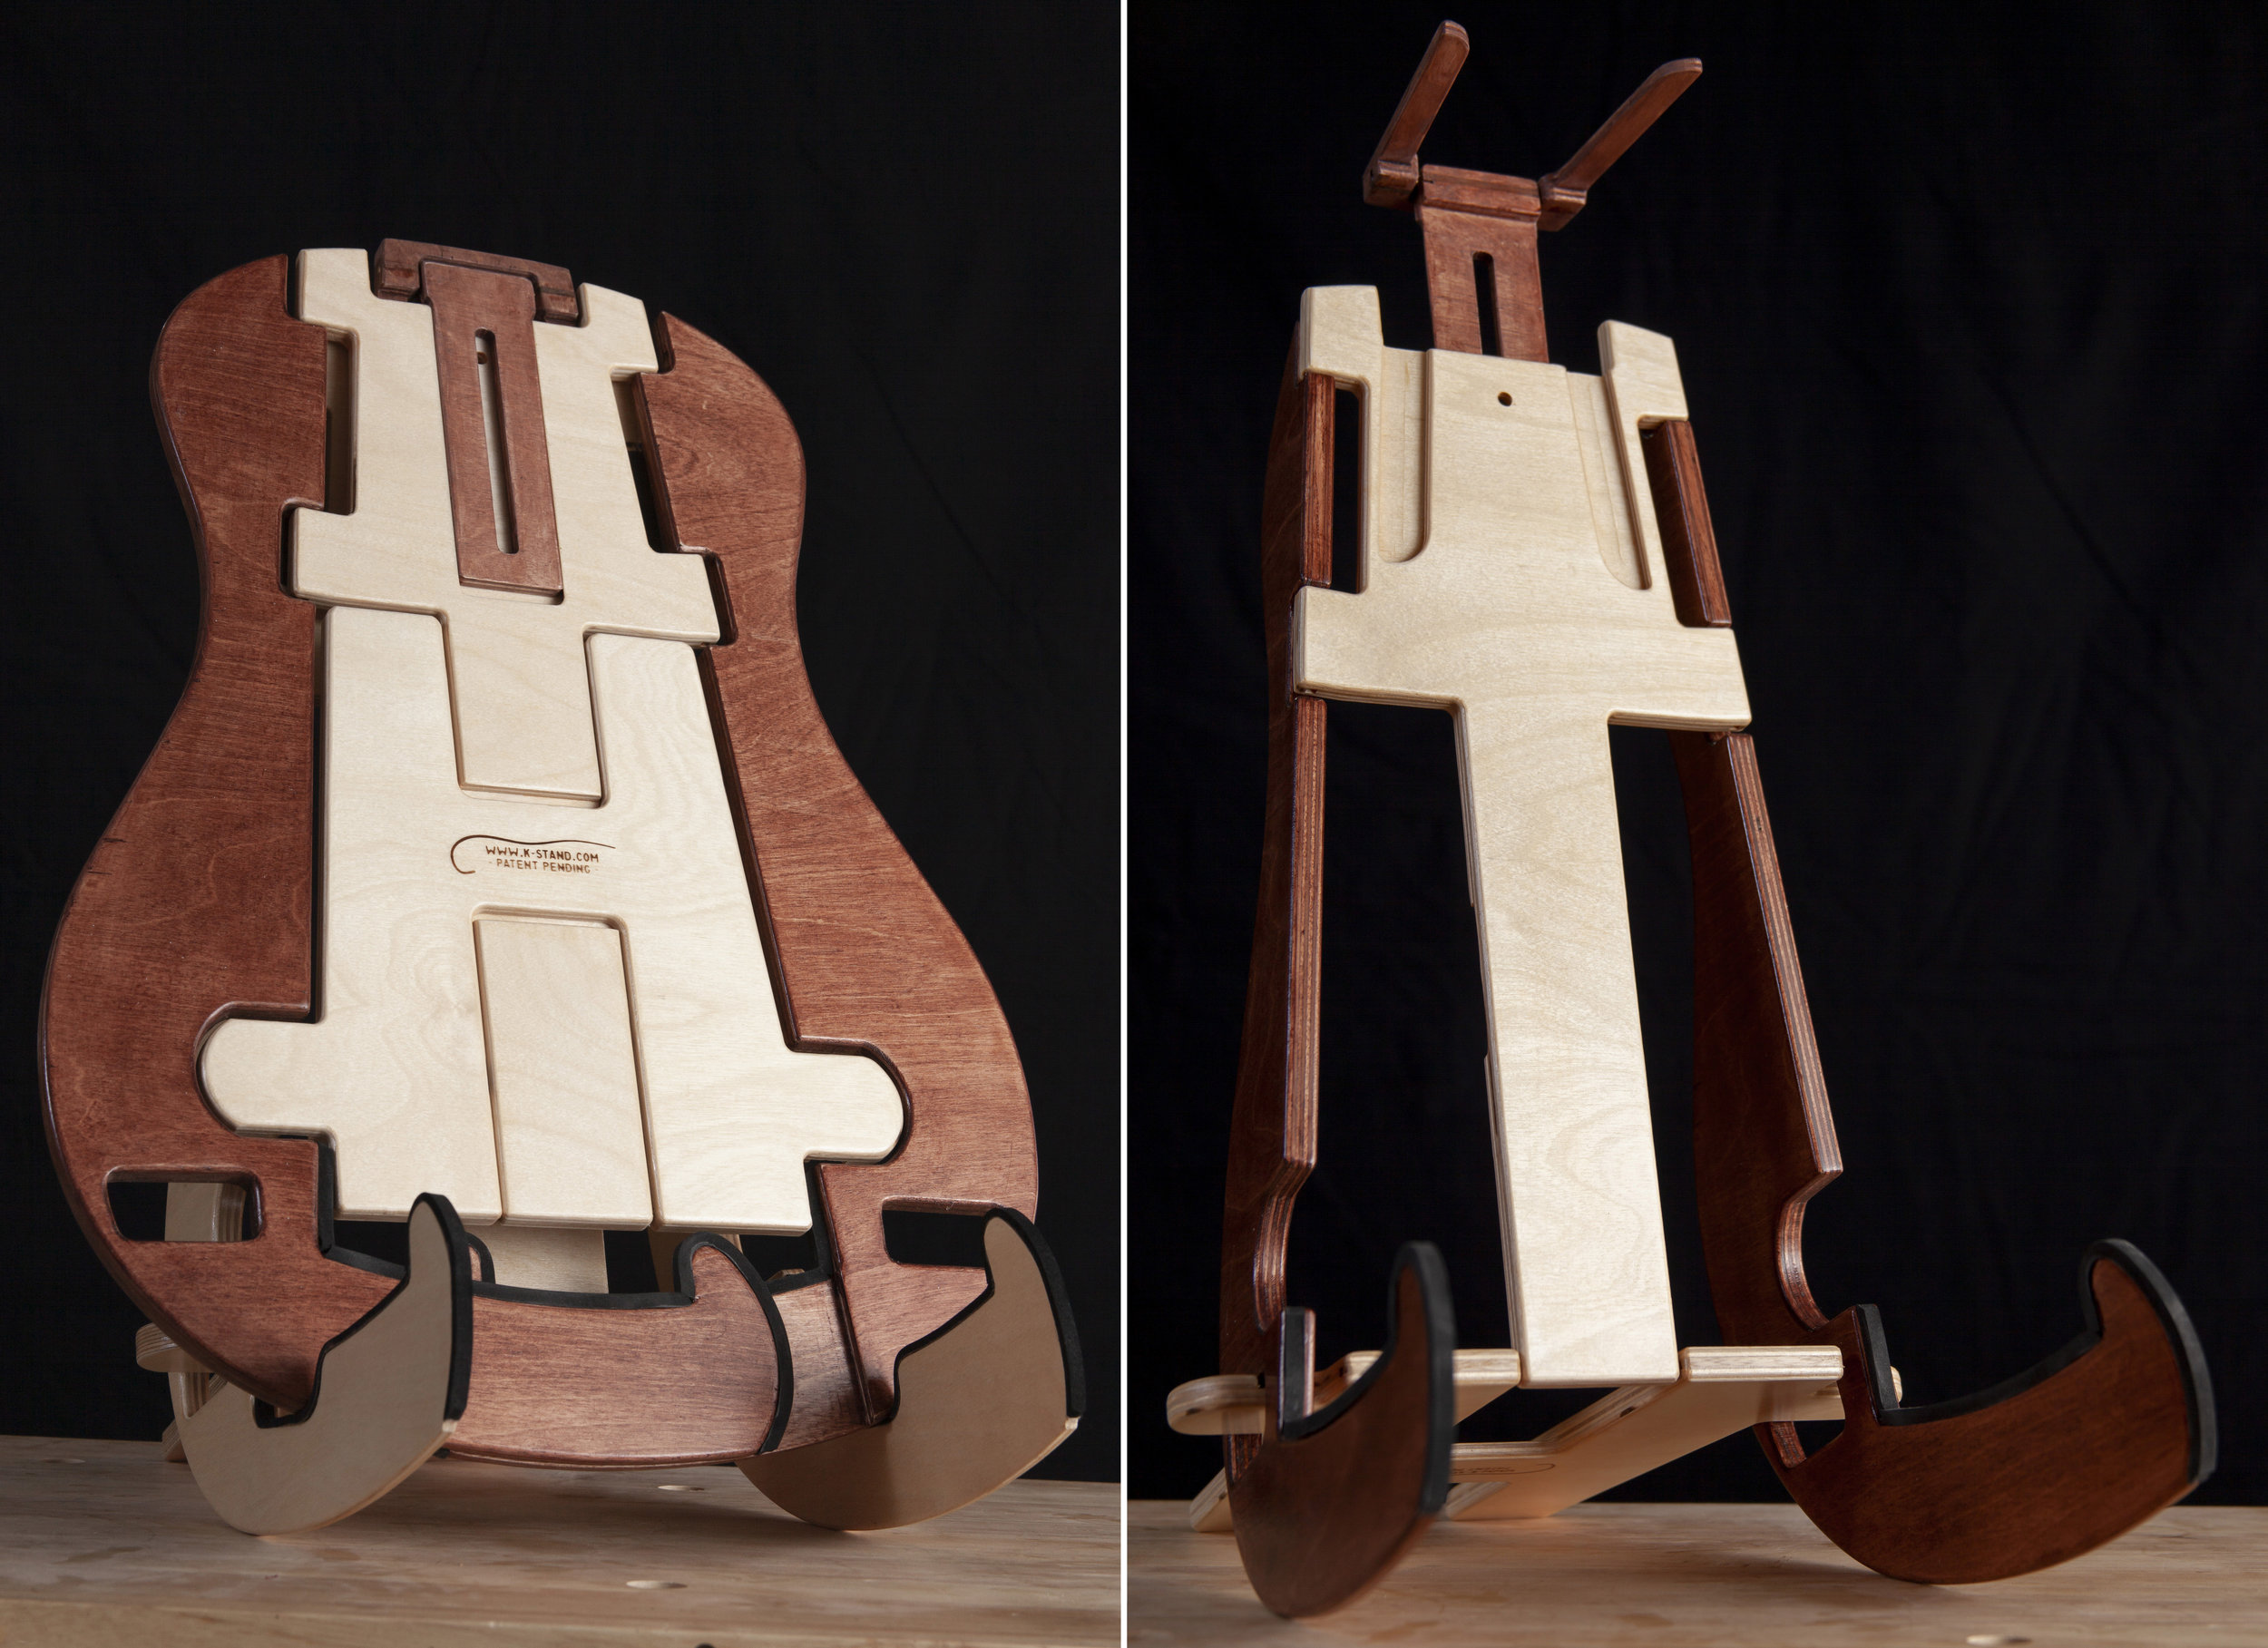 The K-Stand is designed to lay flat for storage inside your instrument case along with your instrument then fold to become a sturdy instrument stand for your Guitar, Ukulele or other similar instrument. Every K-Stand is hand-made hardwood and is available in a variety of finish colors.